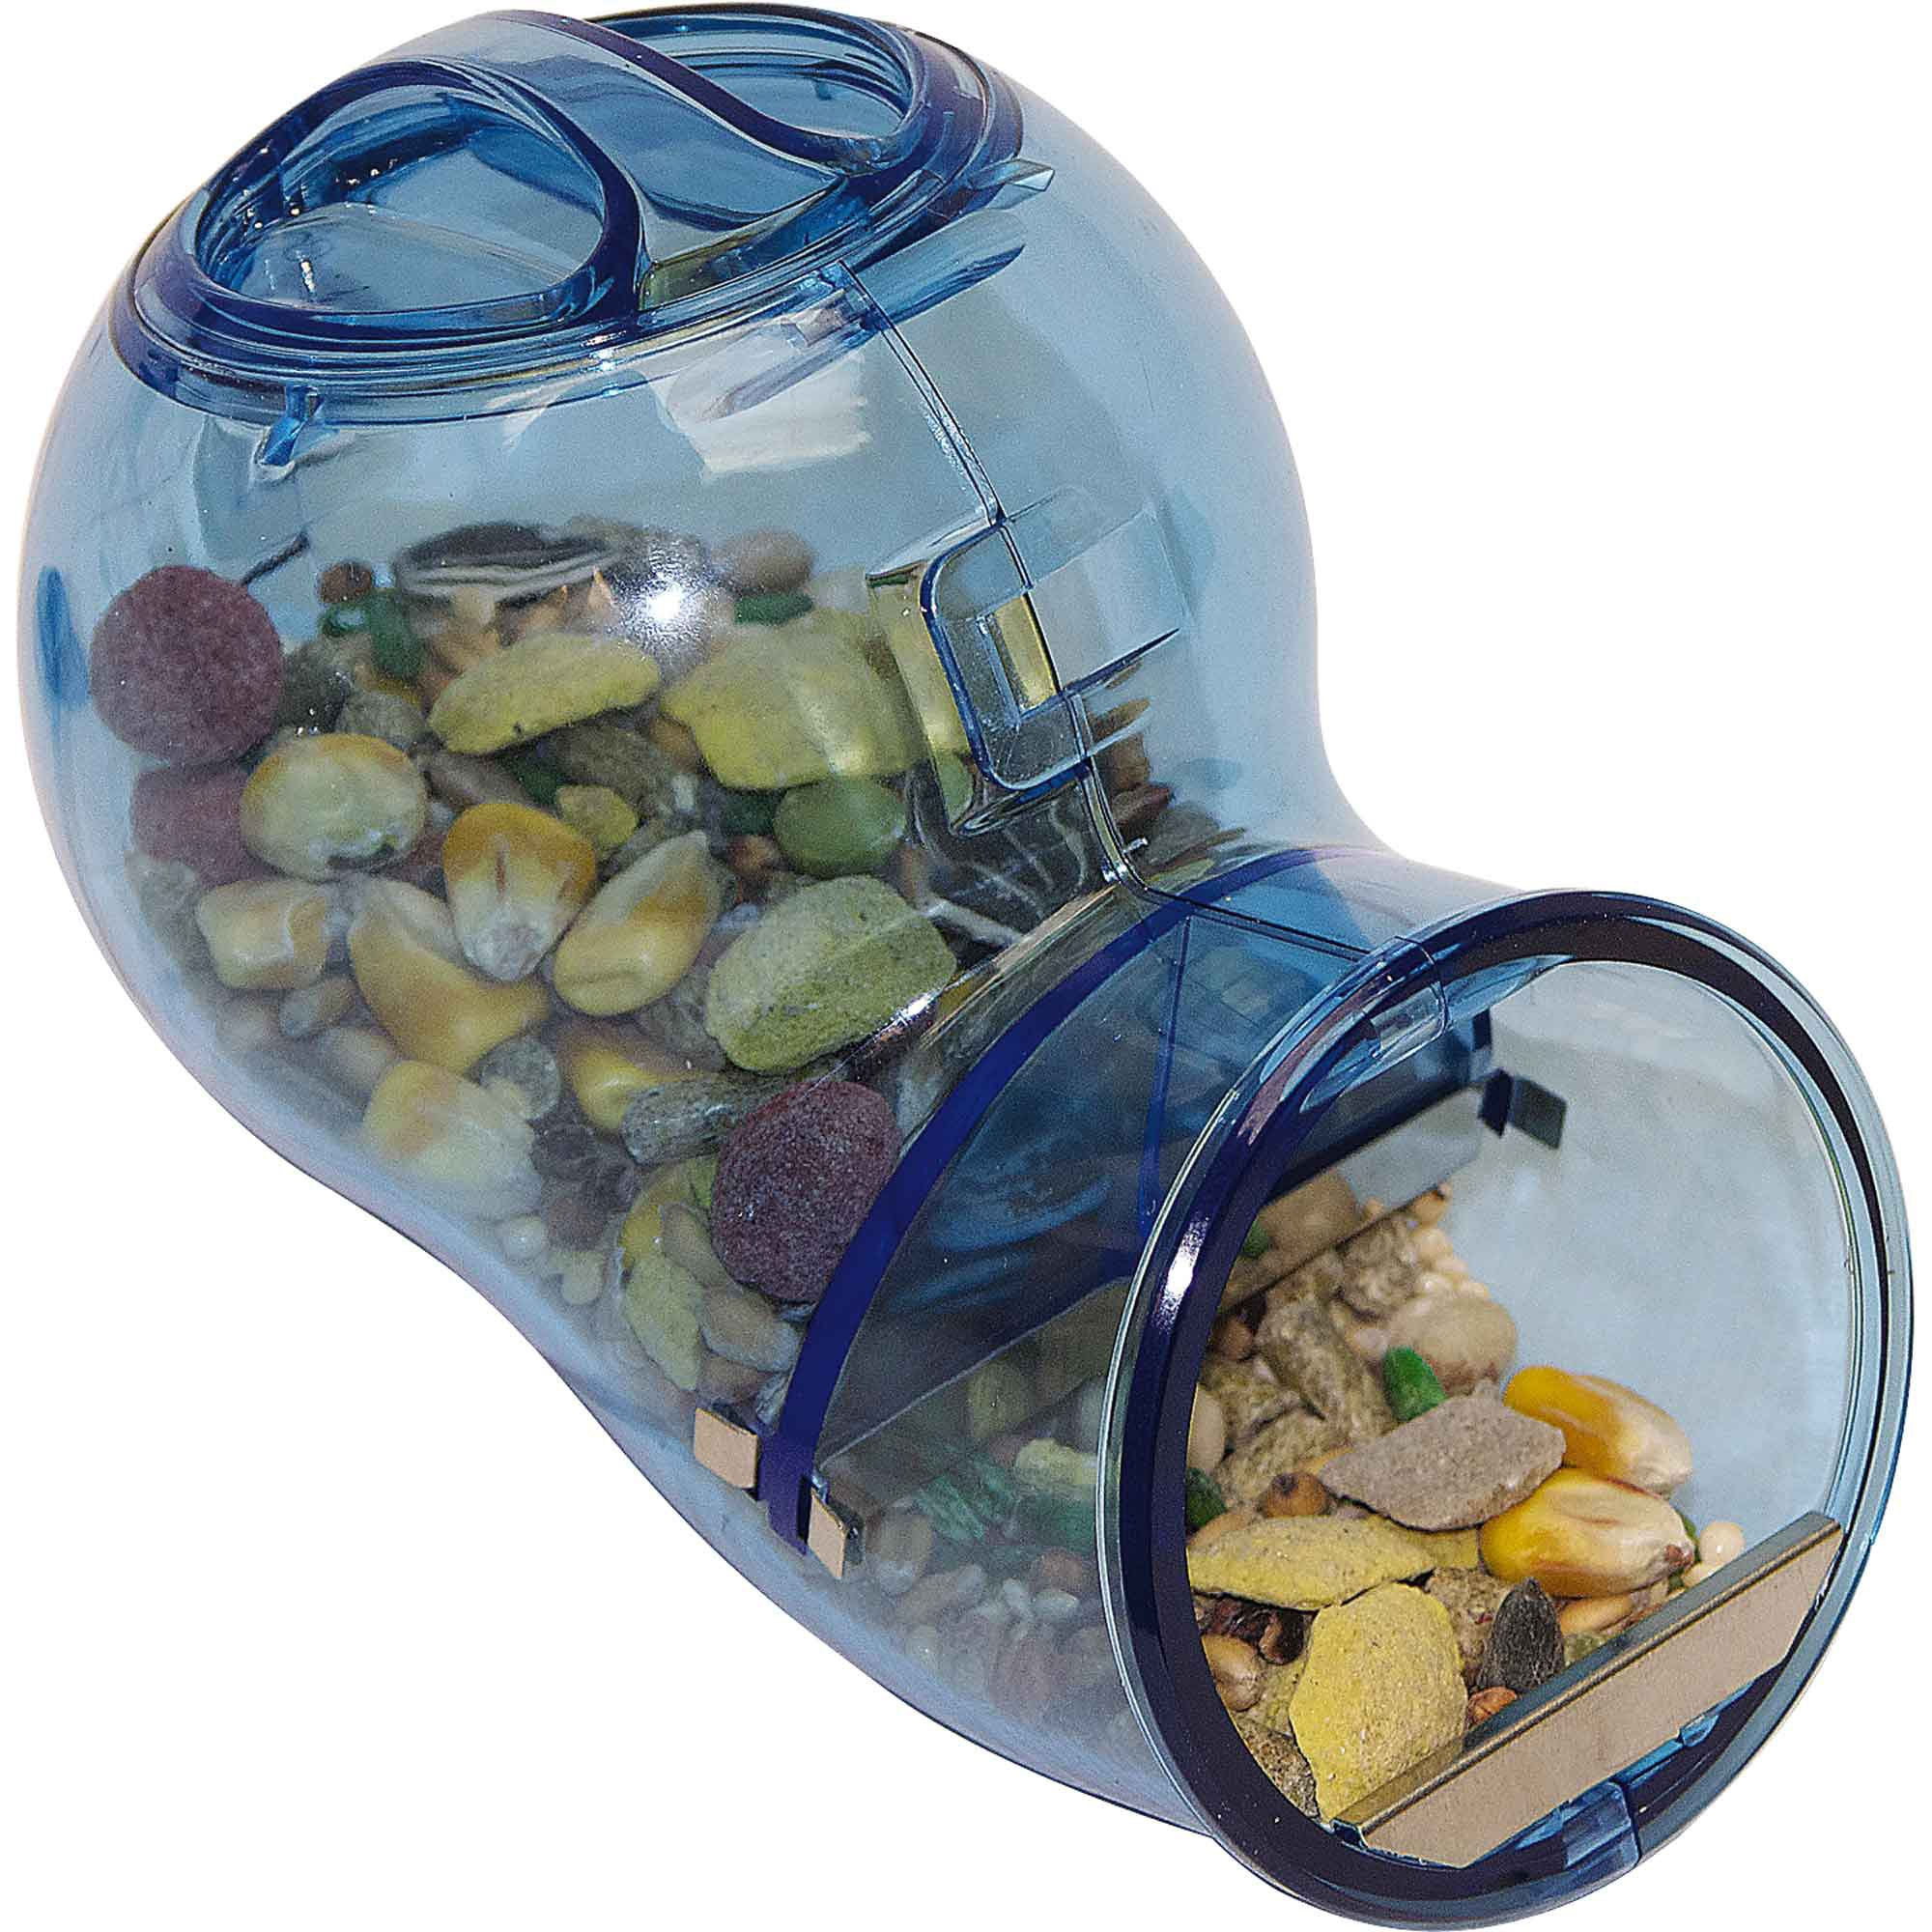 Kaytee critter trail food dispenser petco for Fish food dispenser